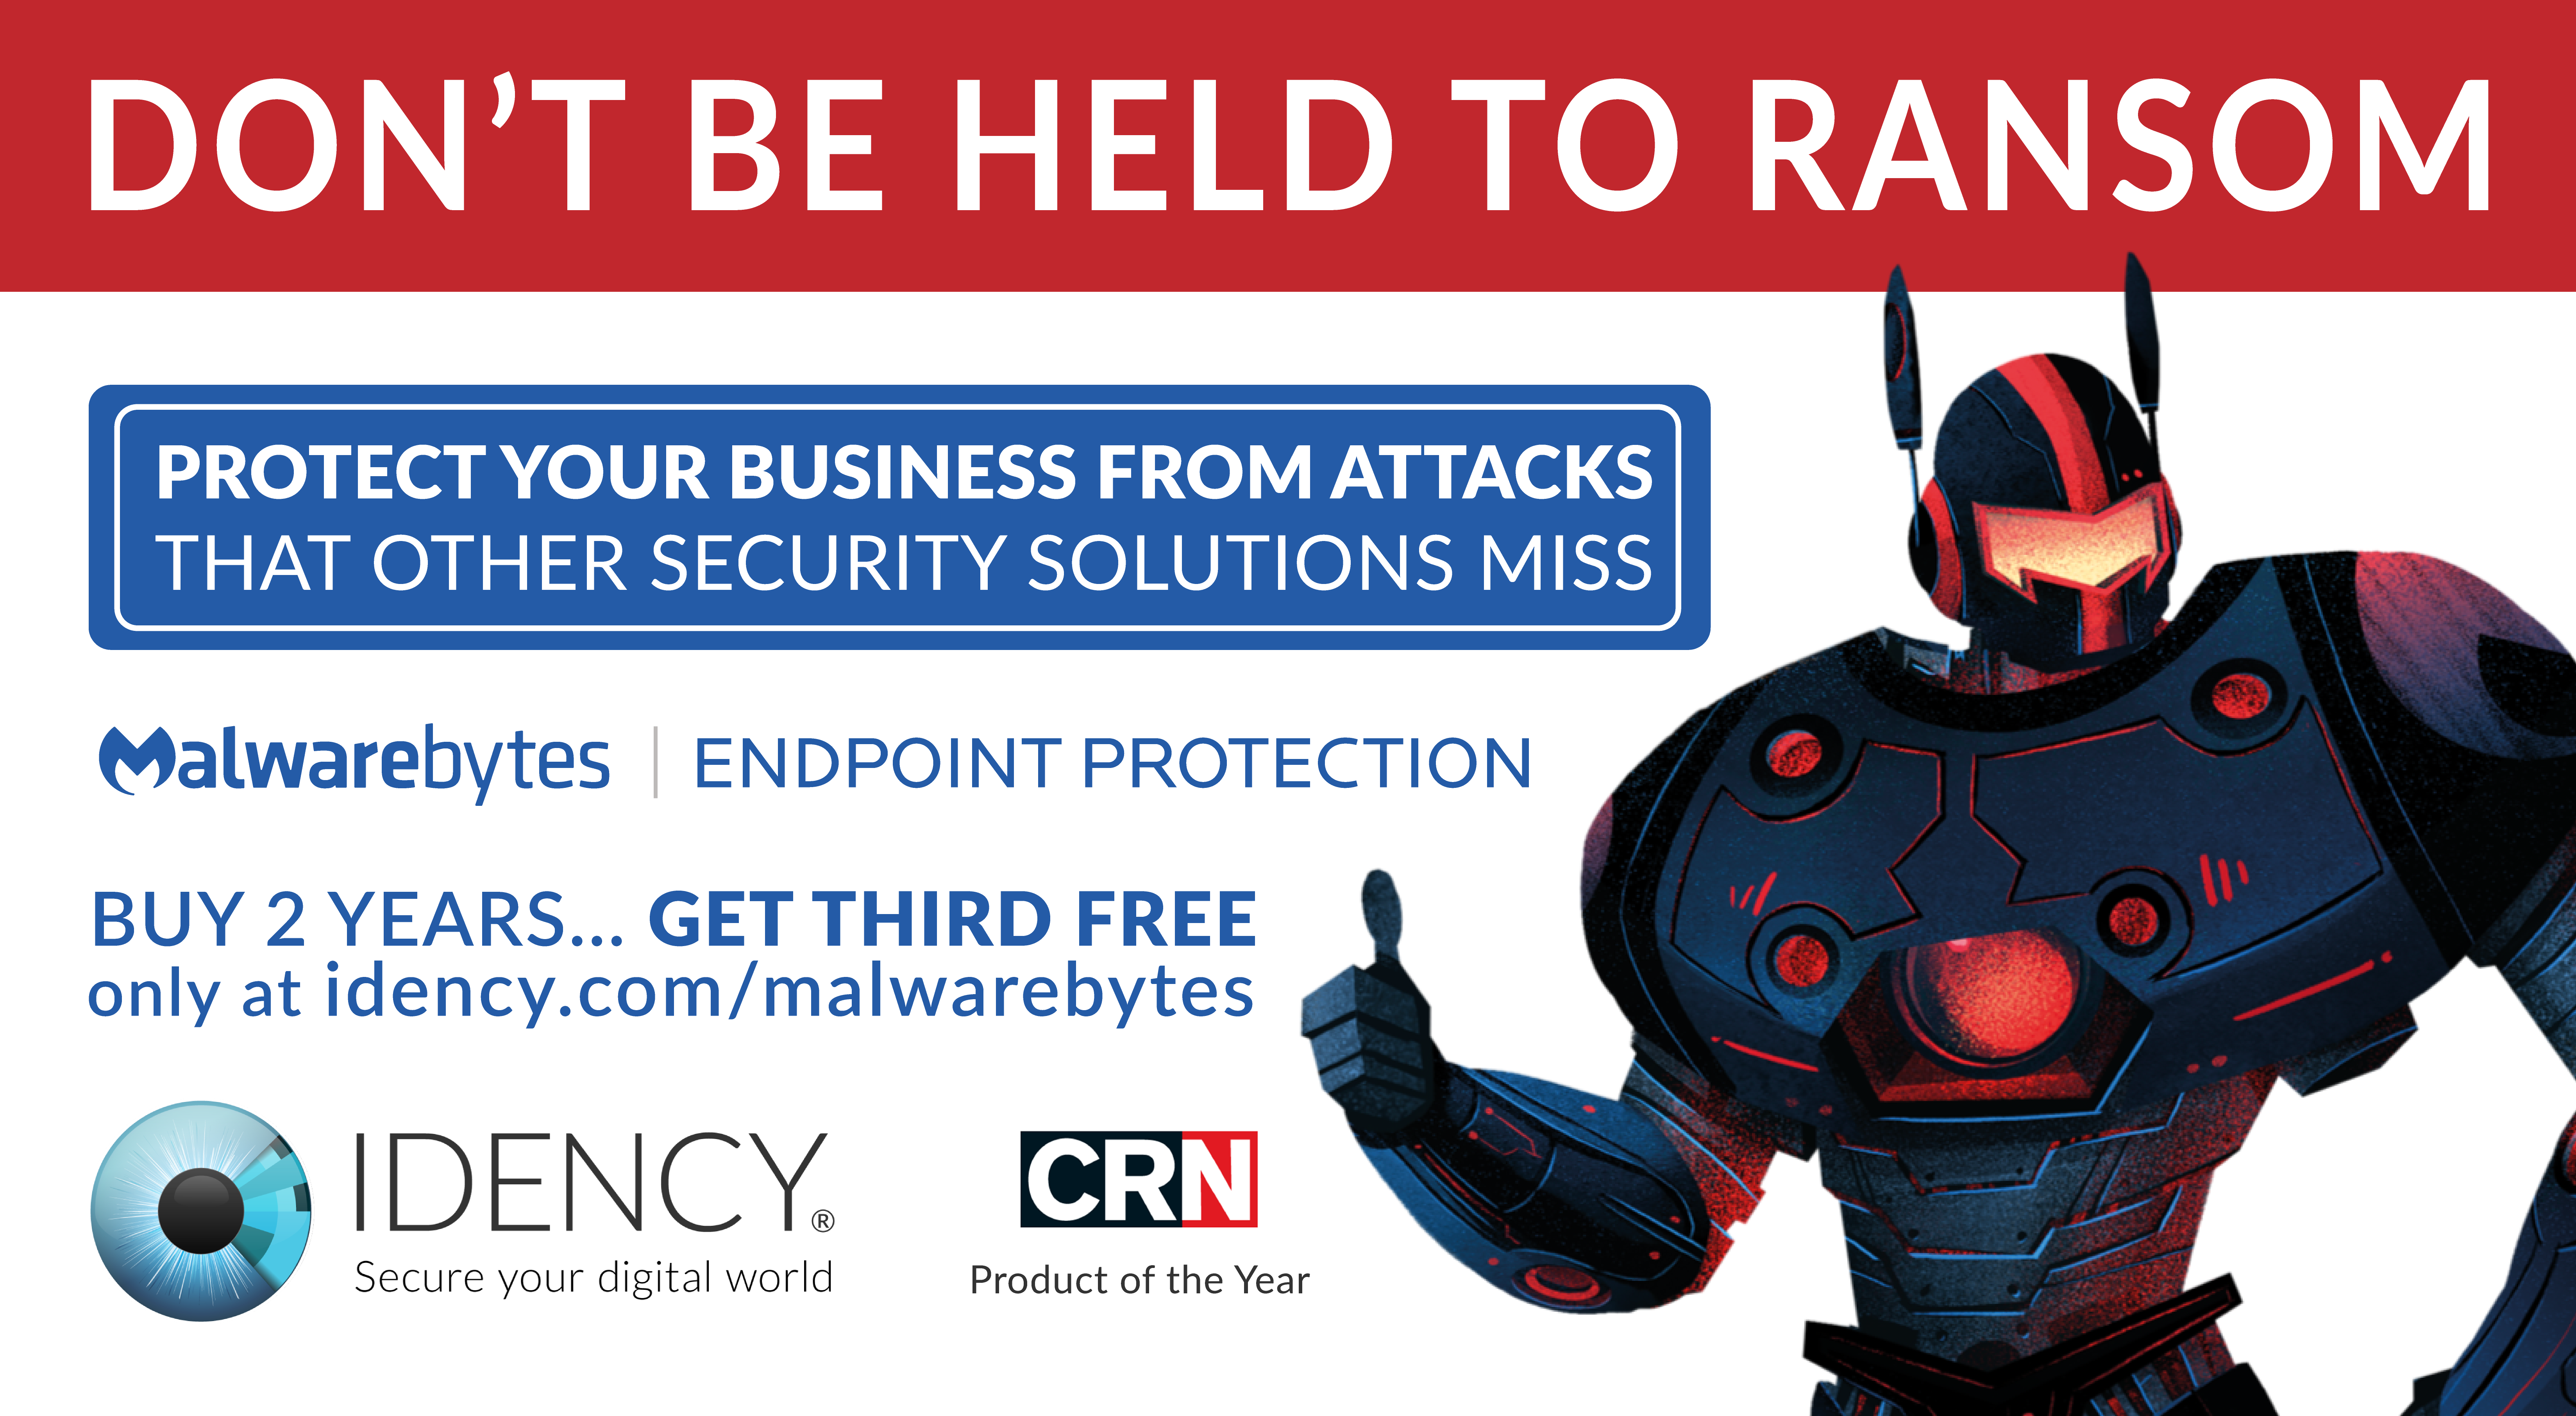 Malwarebytes Endpoint Protection | Business Security